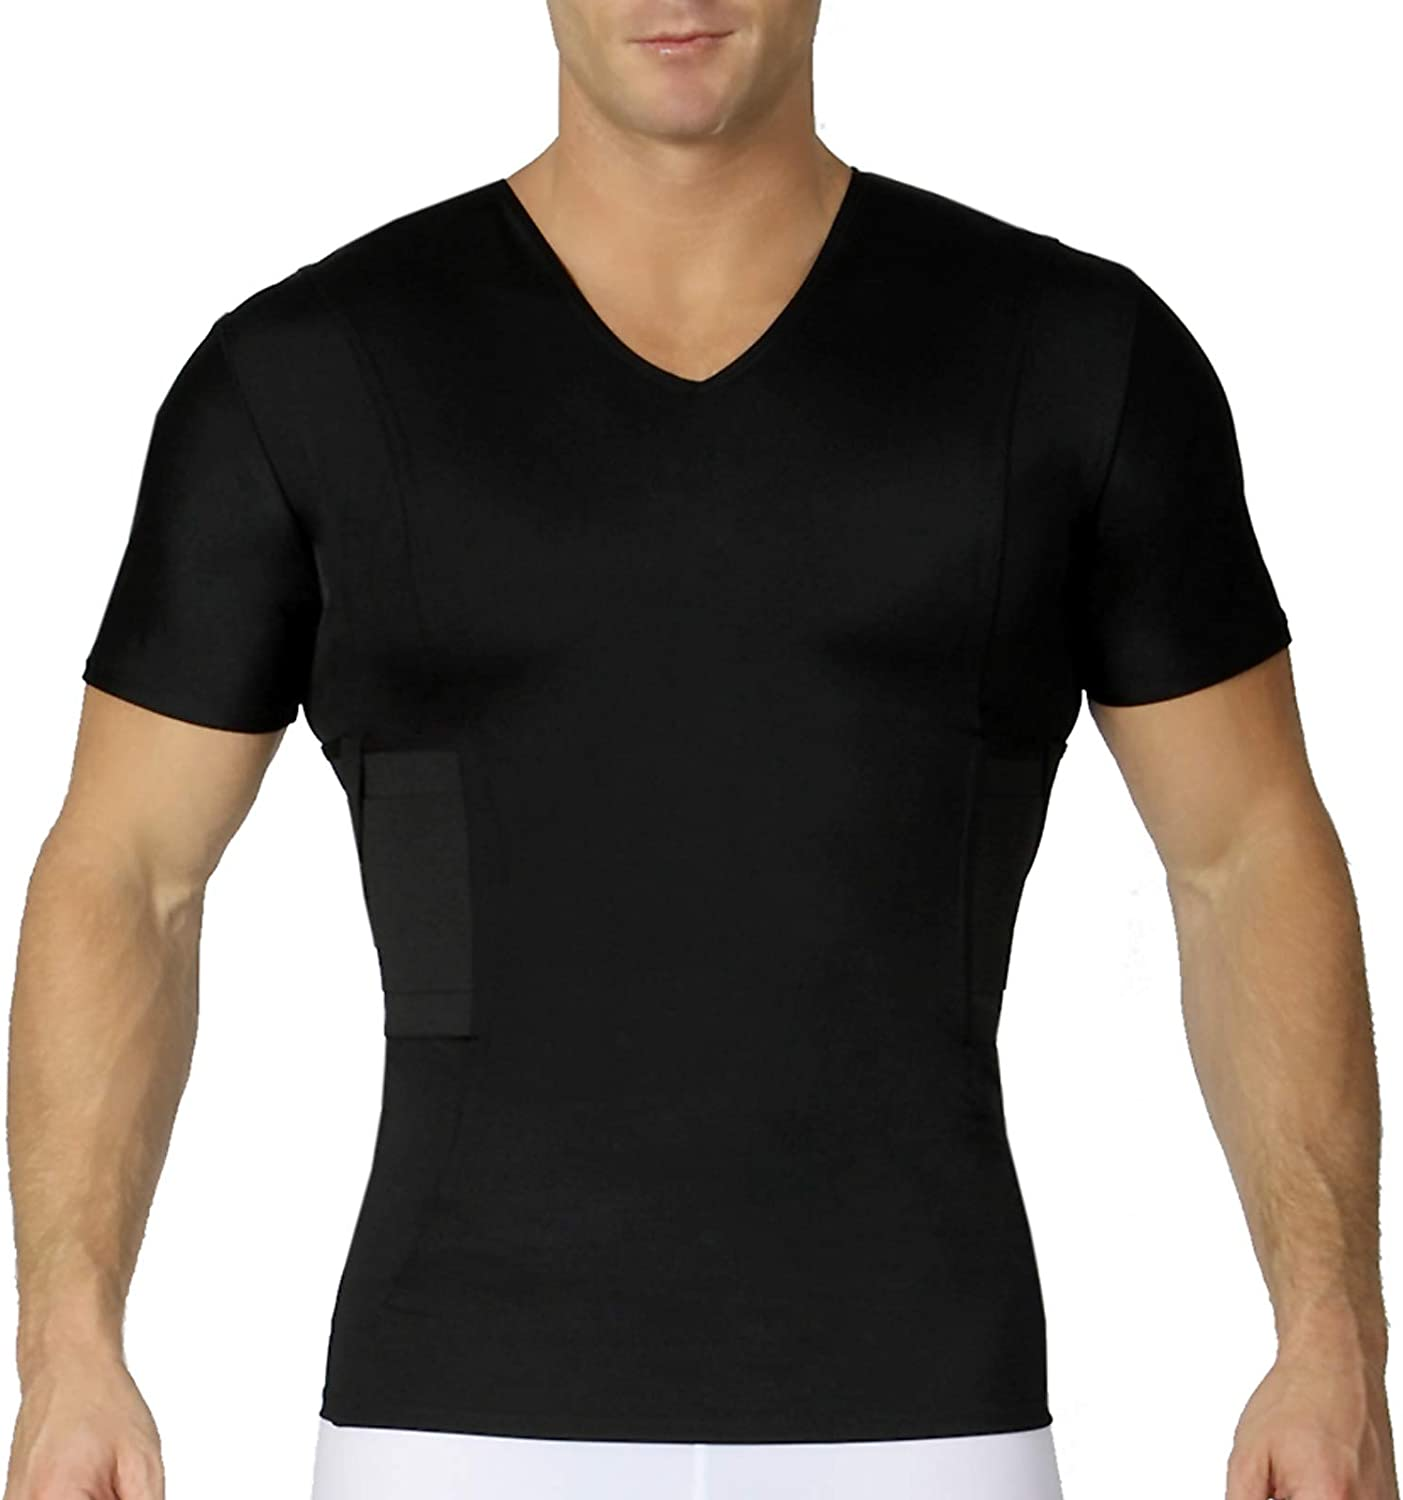 ISPRO TACTICAL Concealment Compression V-Neck Shirt w/Built-in Holster for Daily Training Home Defense MGV017